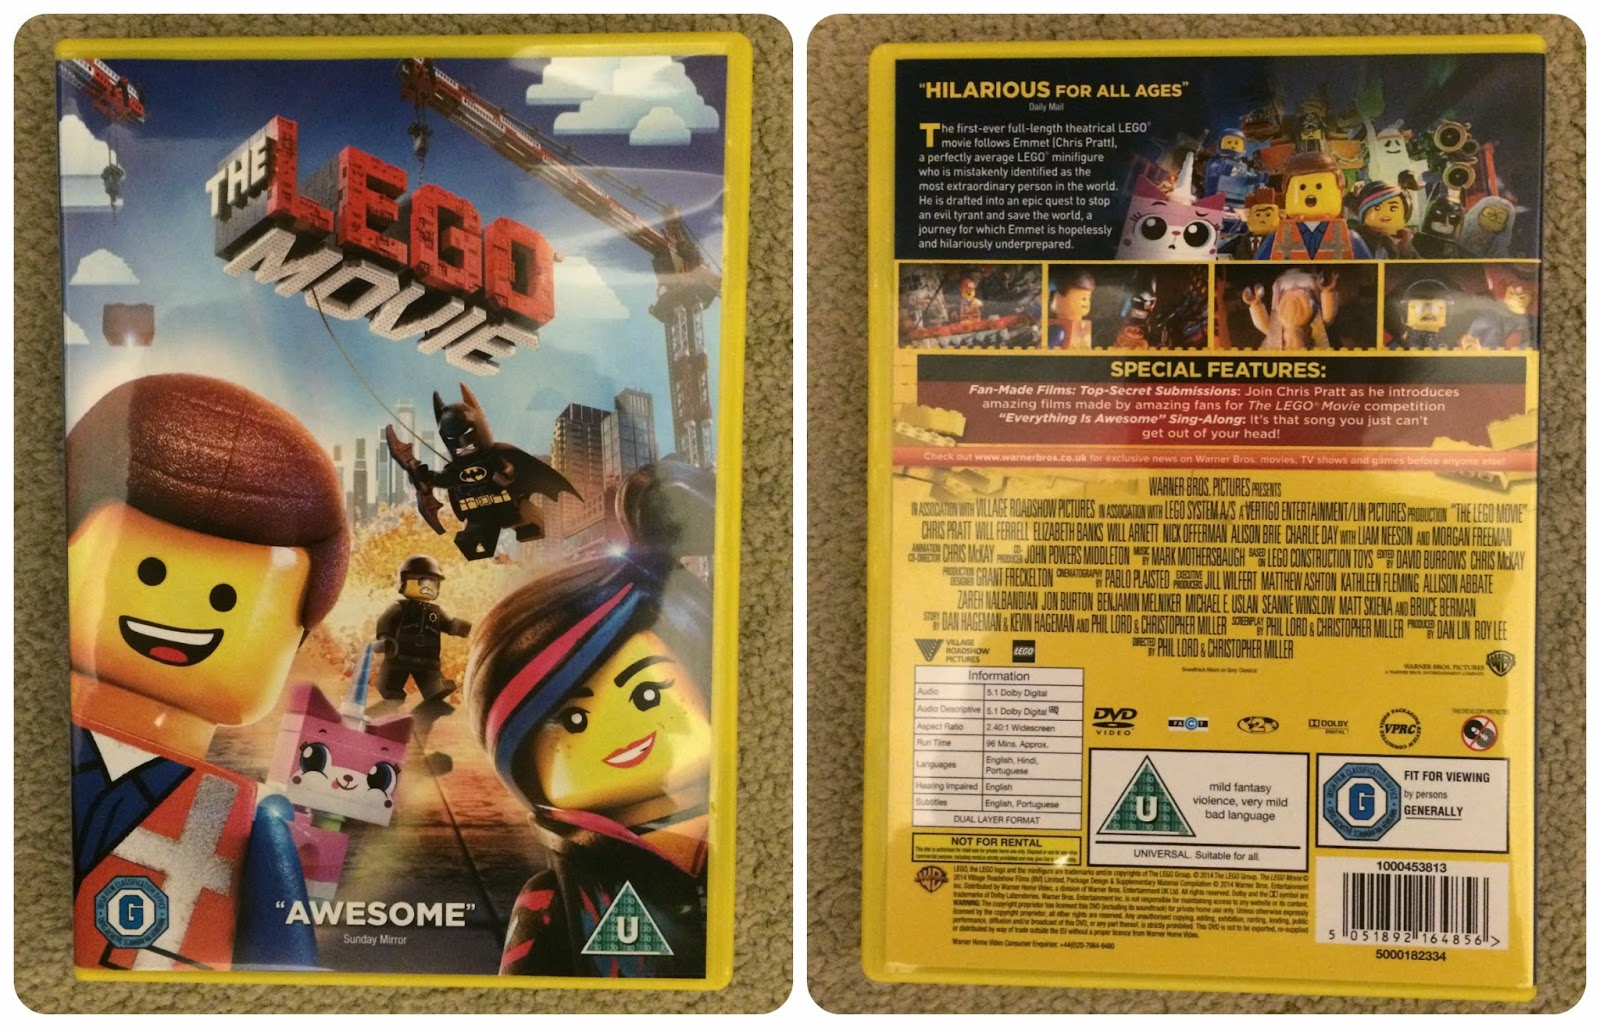 Celestial Mum Everything Is Awesome A Review Of The Lego Movie